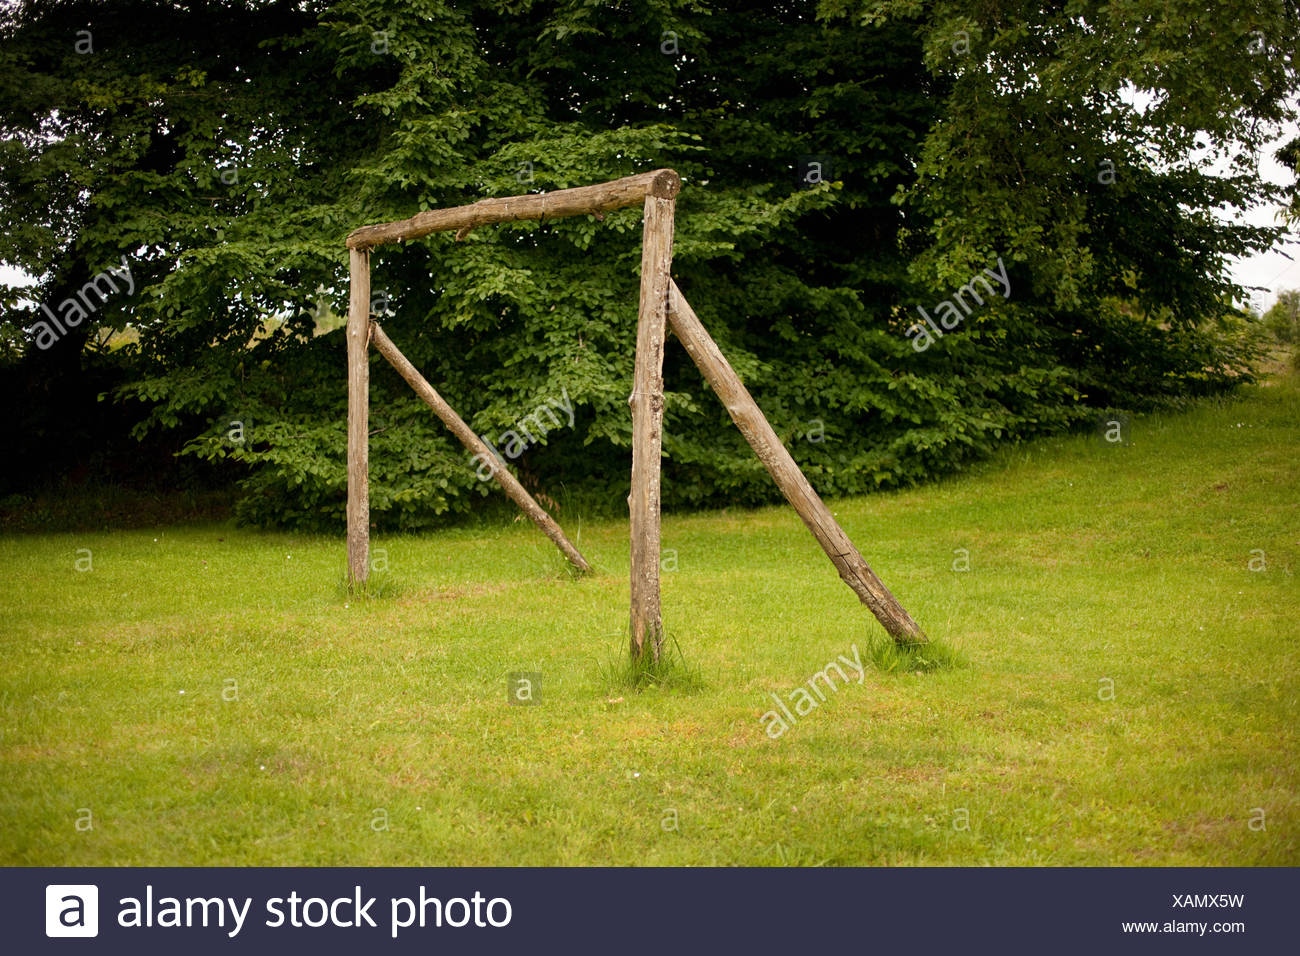 Wooden goal post on grass - Stock Image